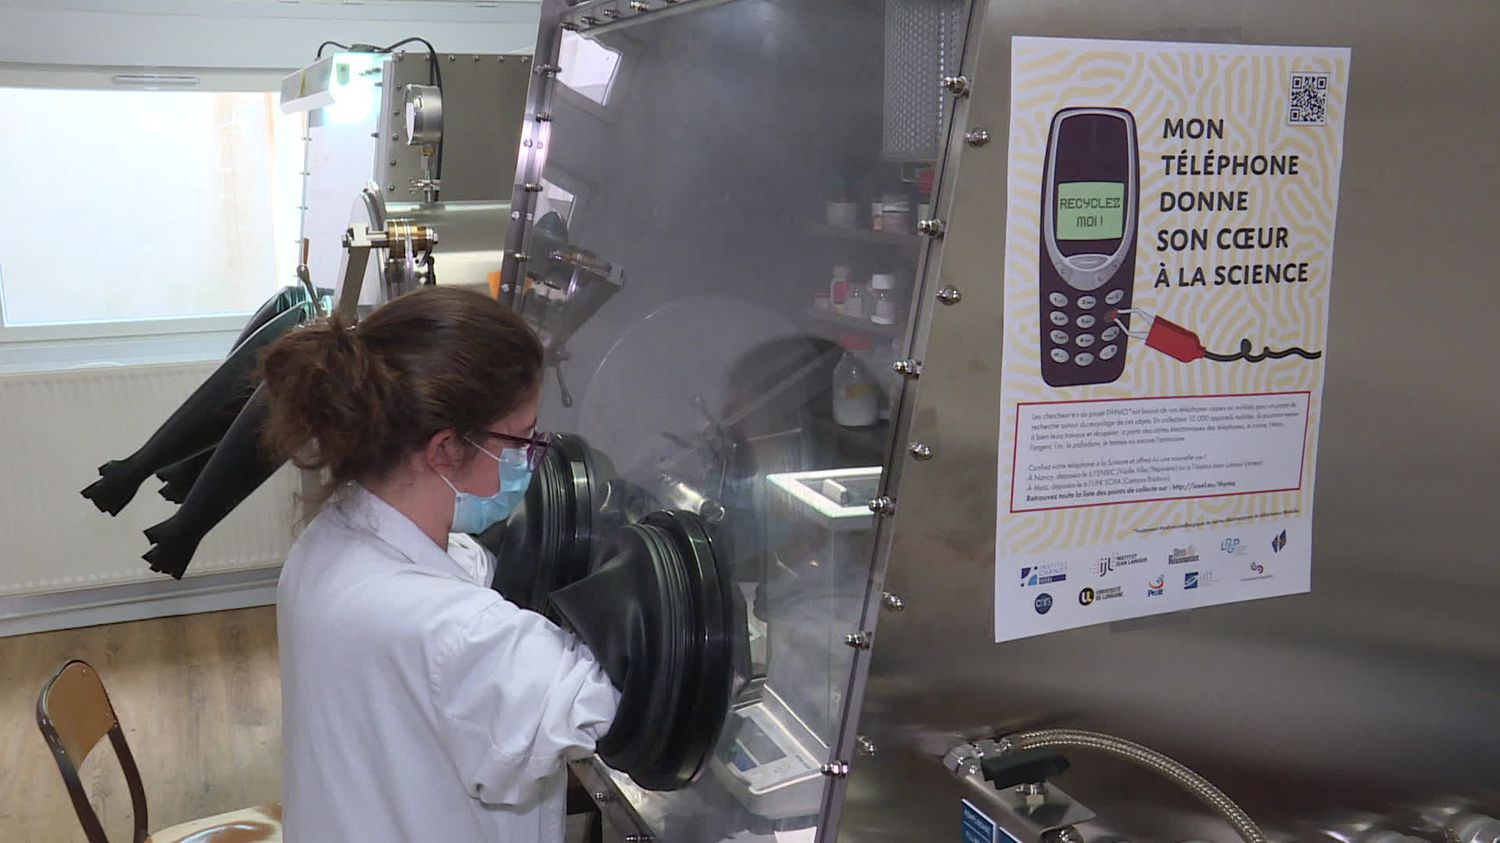 In Lorraine, researchers are proposing to bequeath your phone to science to better recycle it